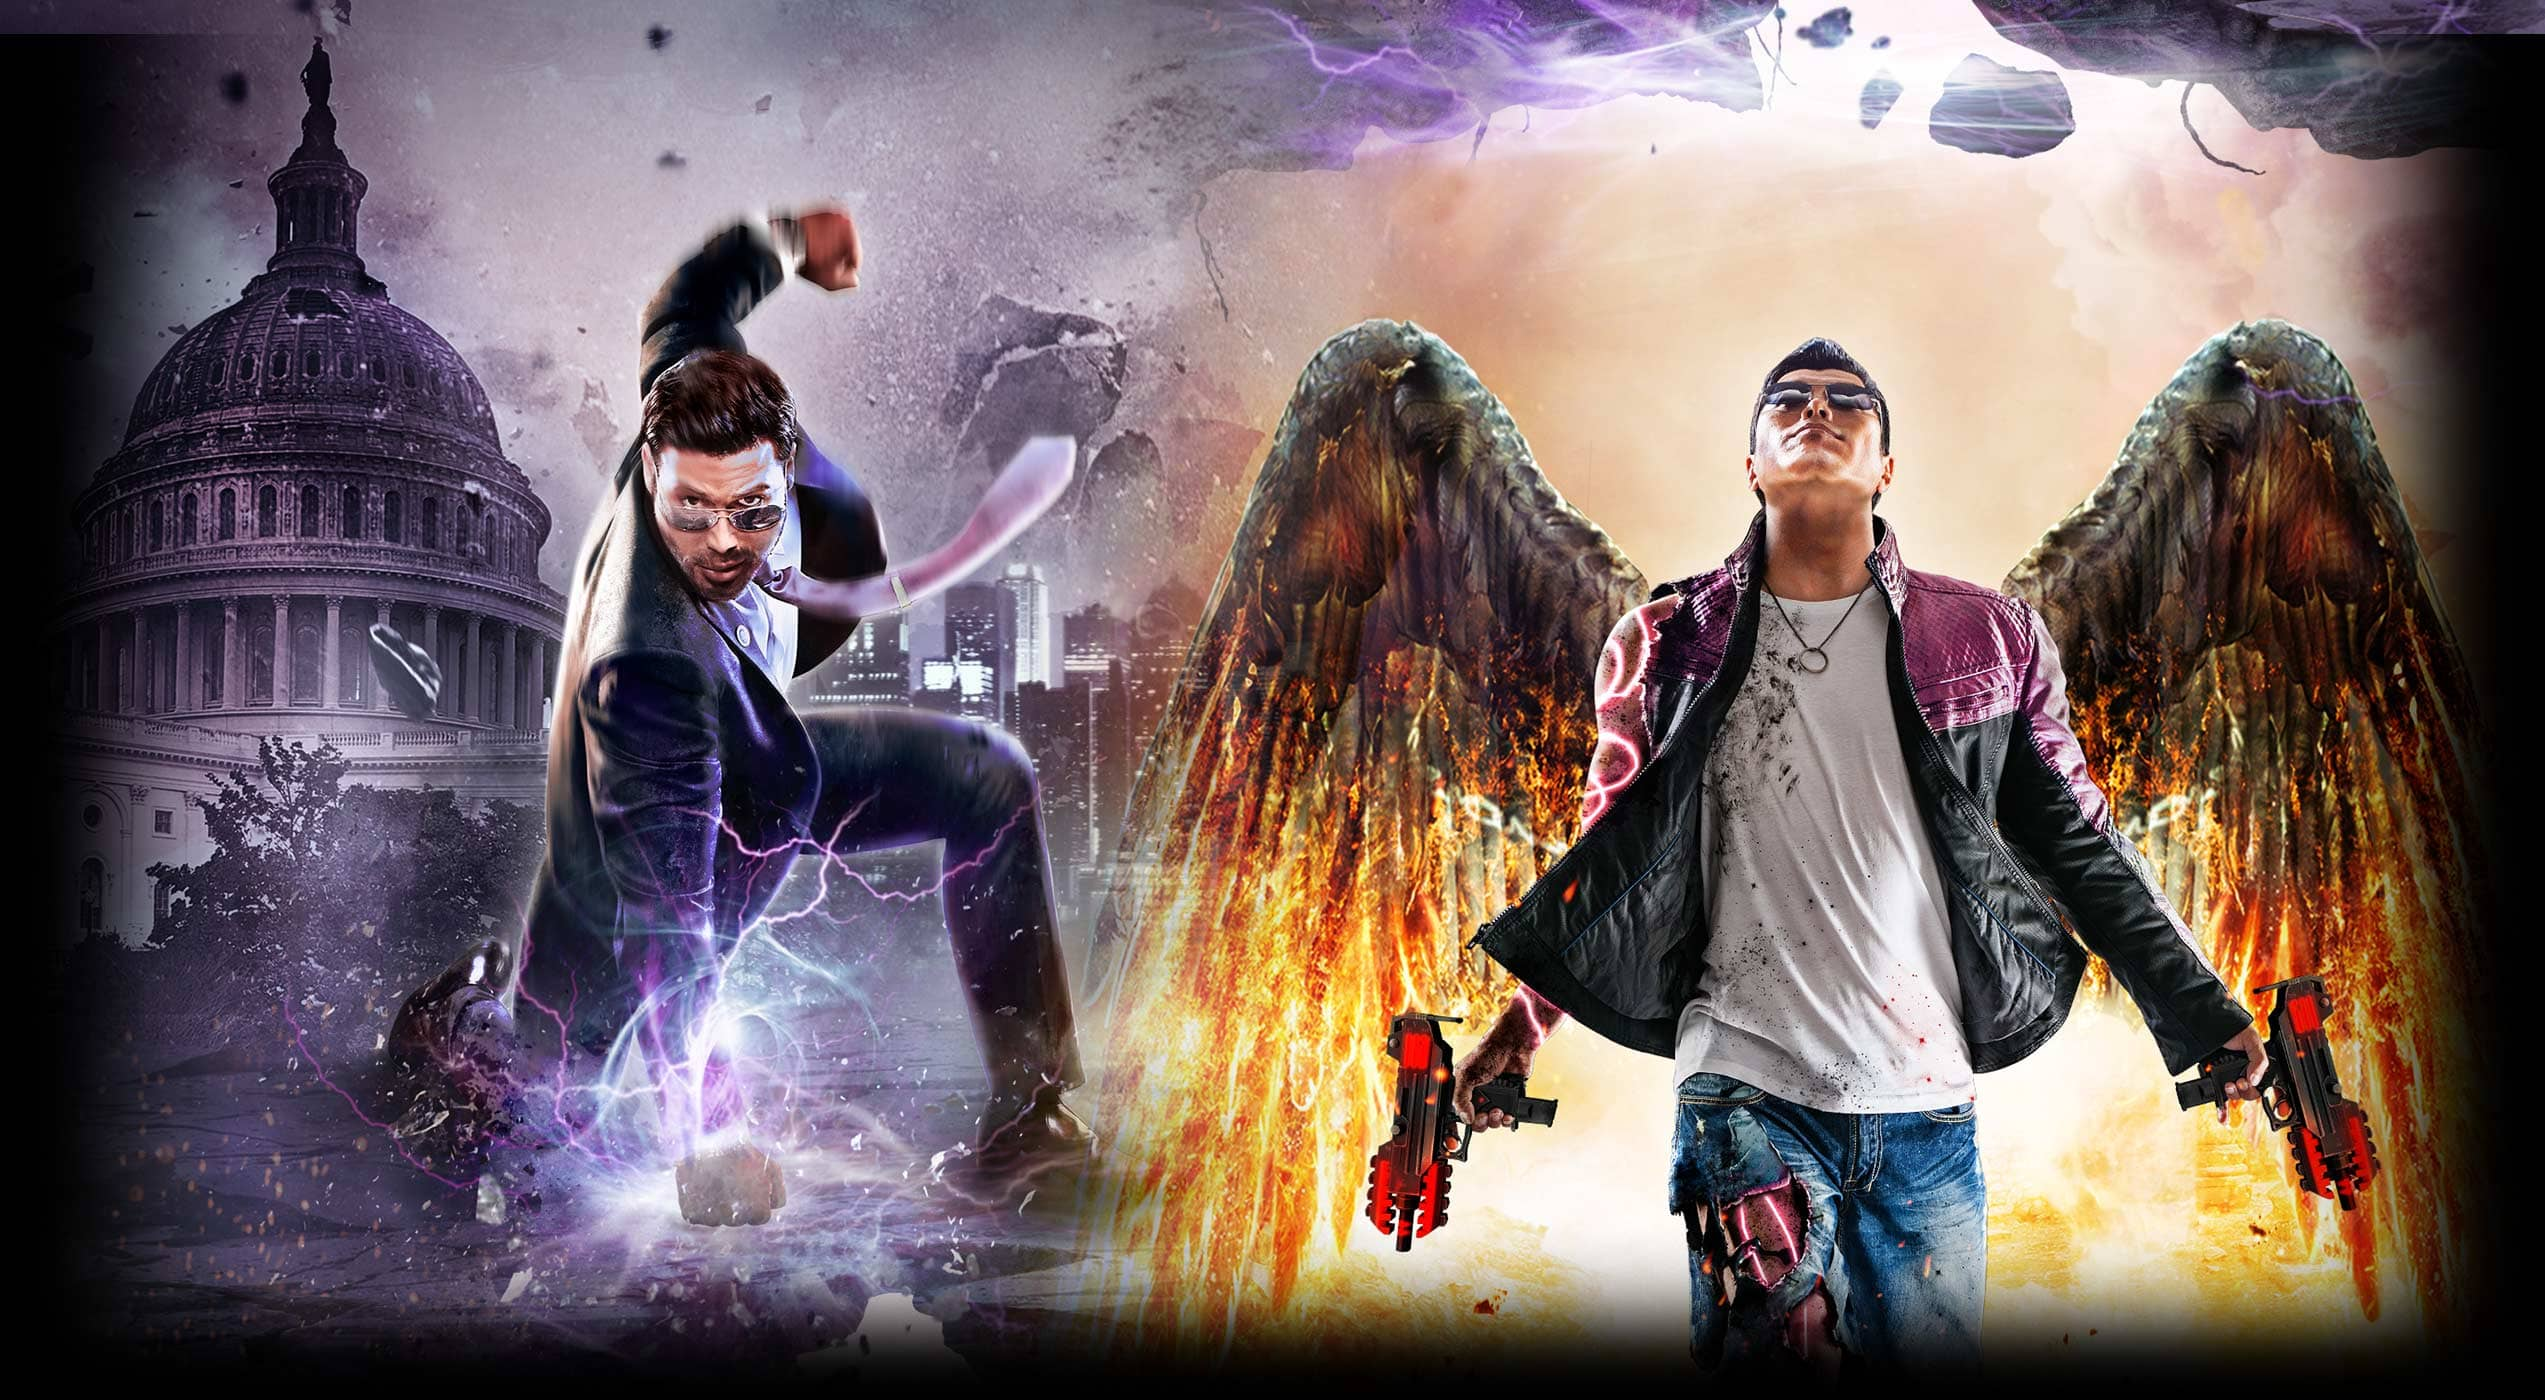 Saints Row IV Re-Elected & Gat Out Of Hell - Buy Now at GAME.co.uk